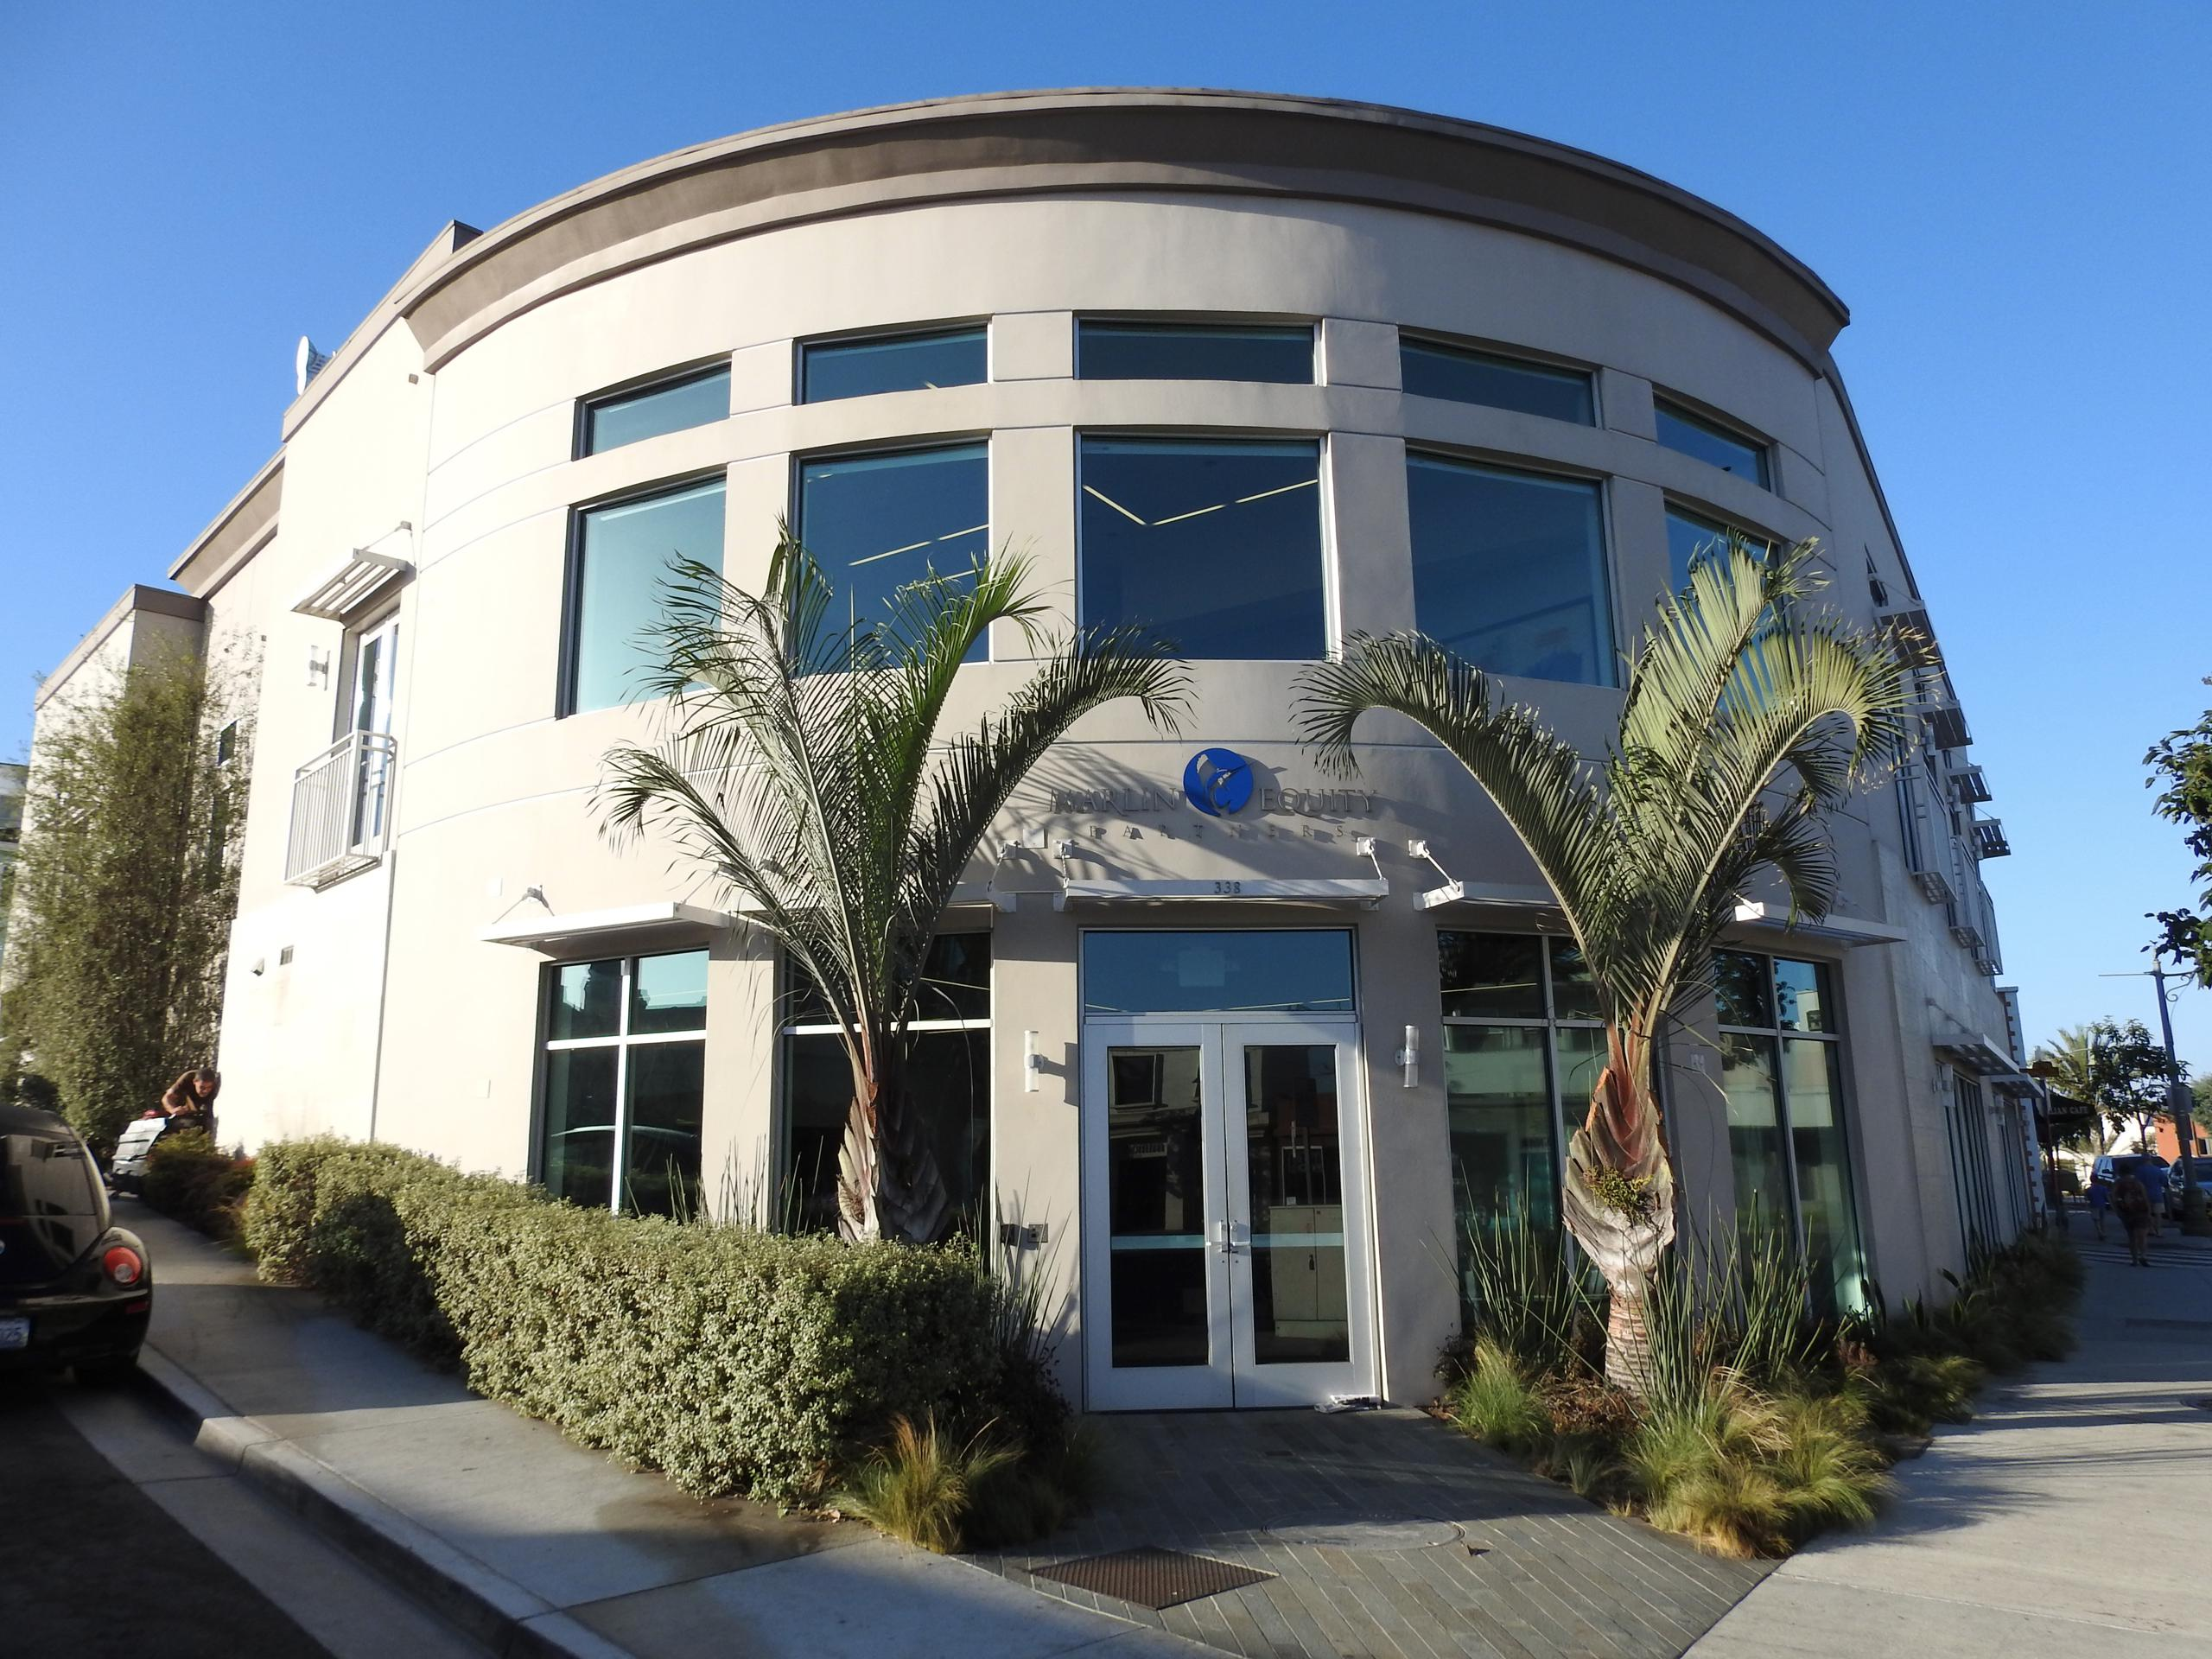 Marlin Equity's headquarters in Hermosa Beach, California.